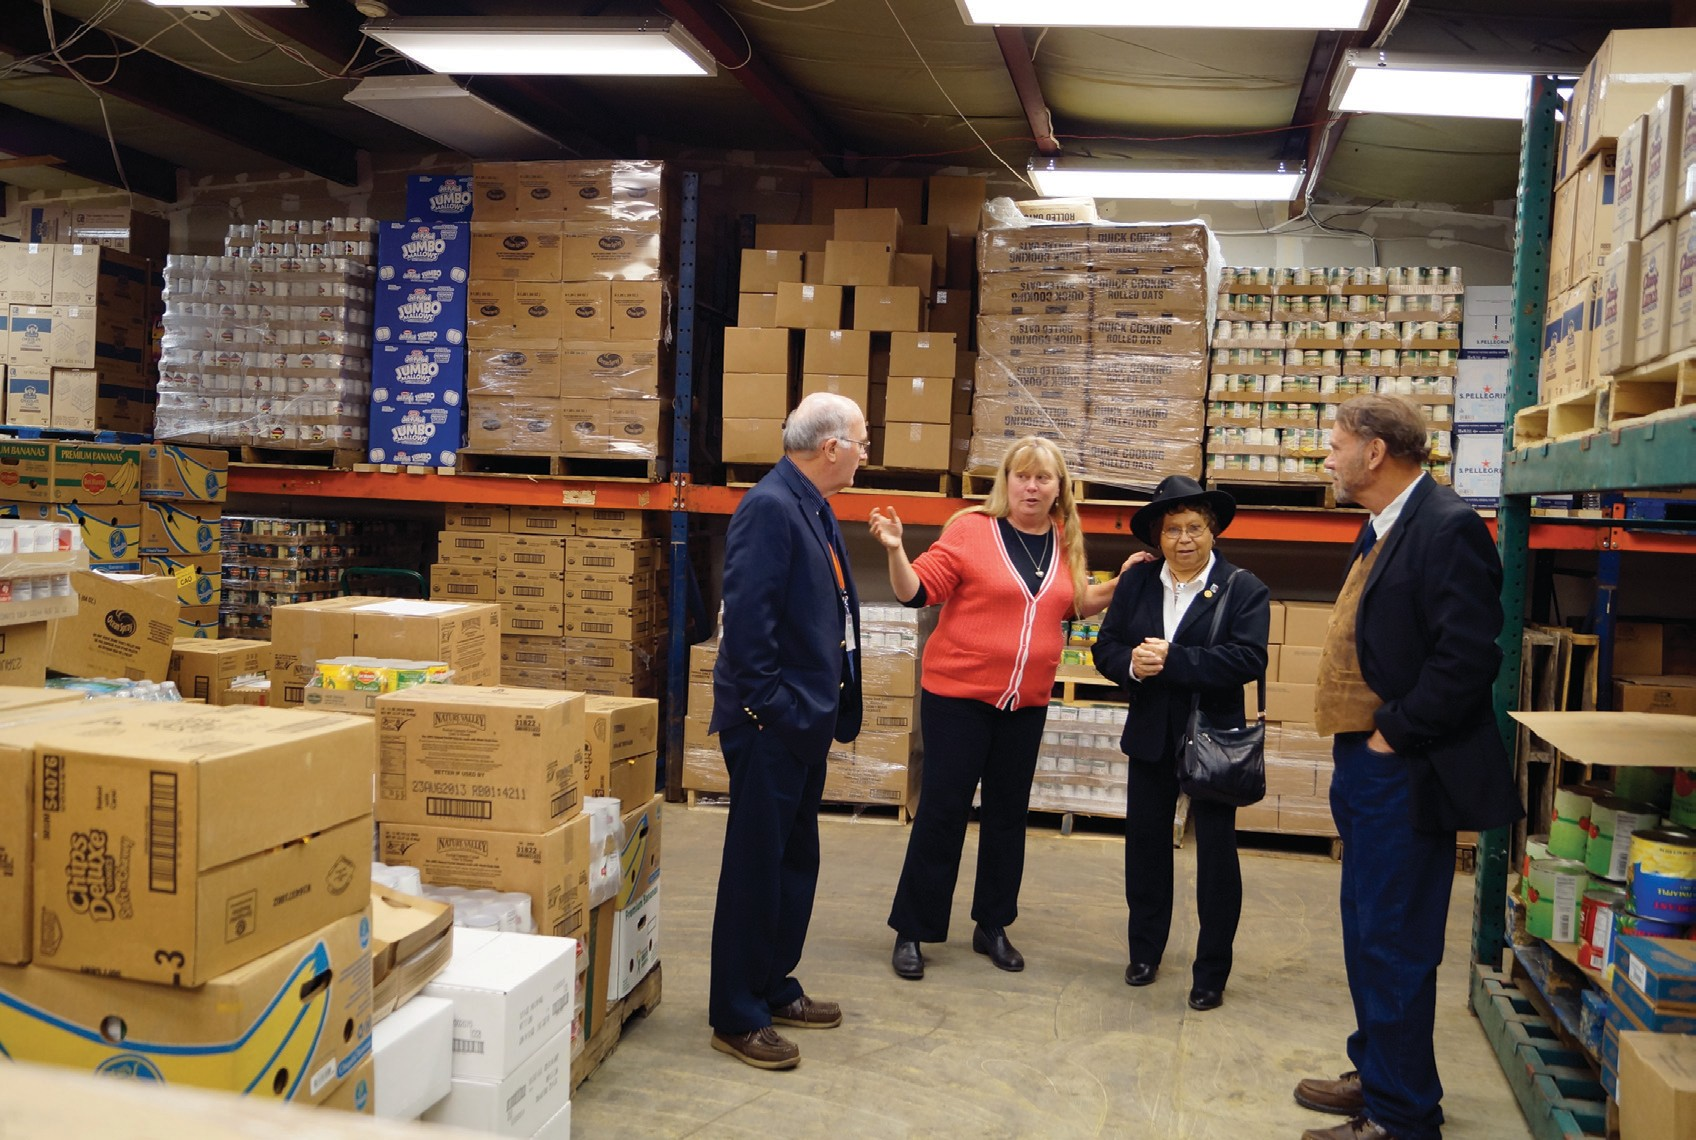 Jodi Bissonnette, second from left, conducts a tour of Food Rescue of York County in Alfred during an open house in November 2013, when the agency moved into the then-new quarters donated by York County government. The agency abruptly closed last week.